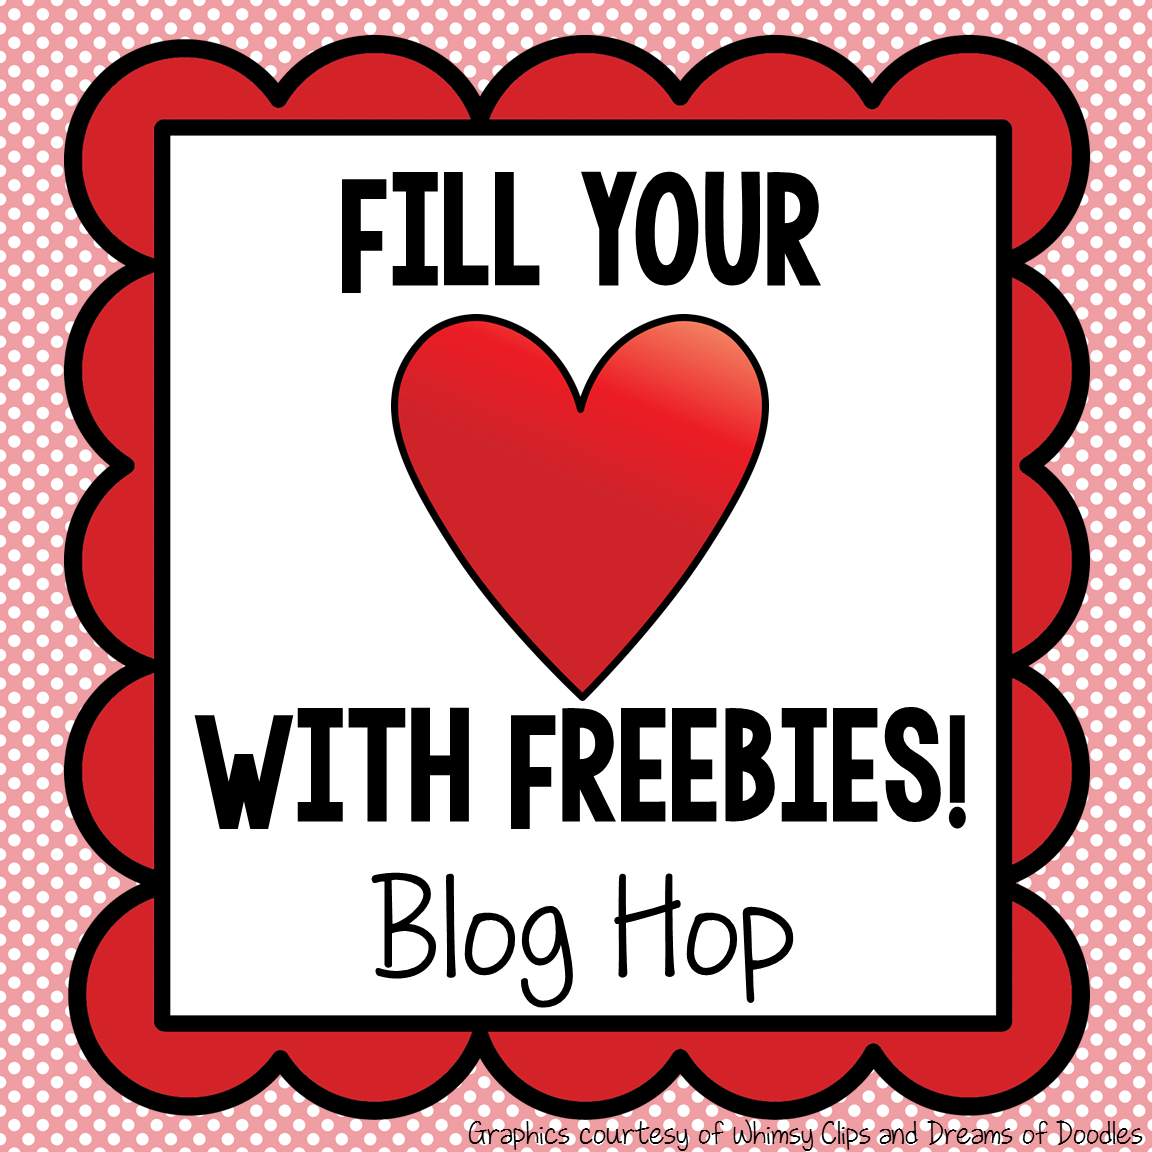 Your freebies